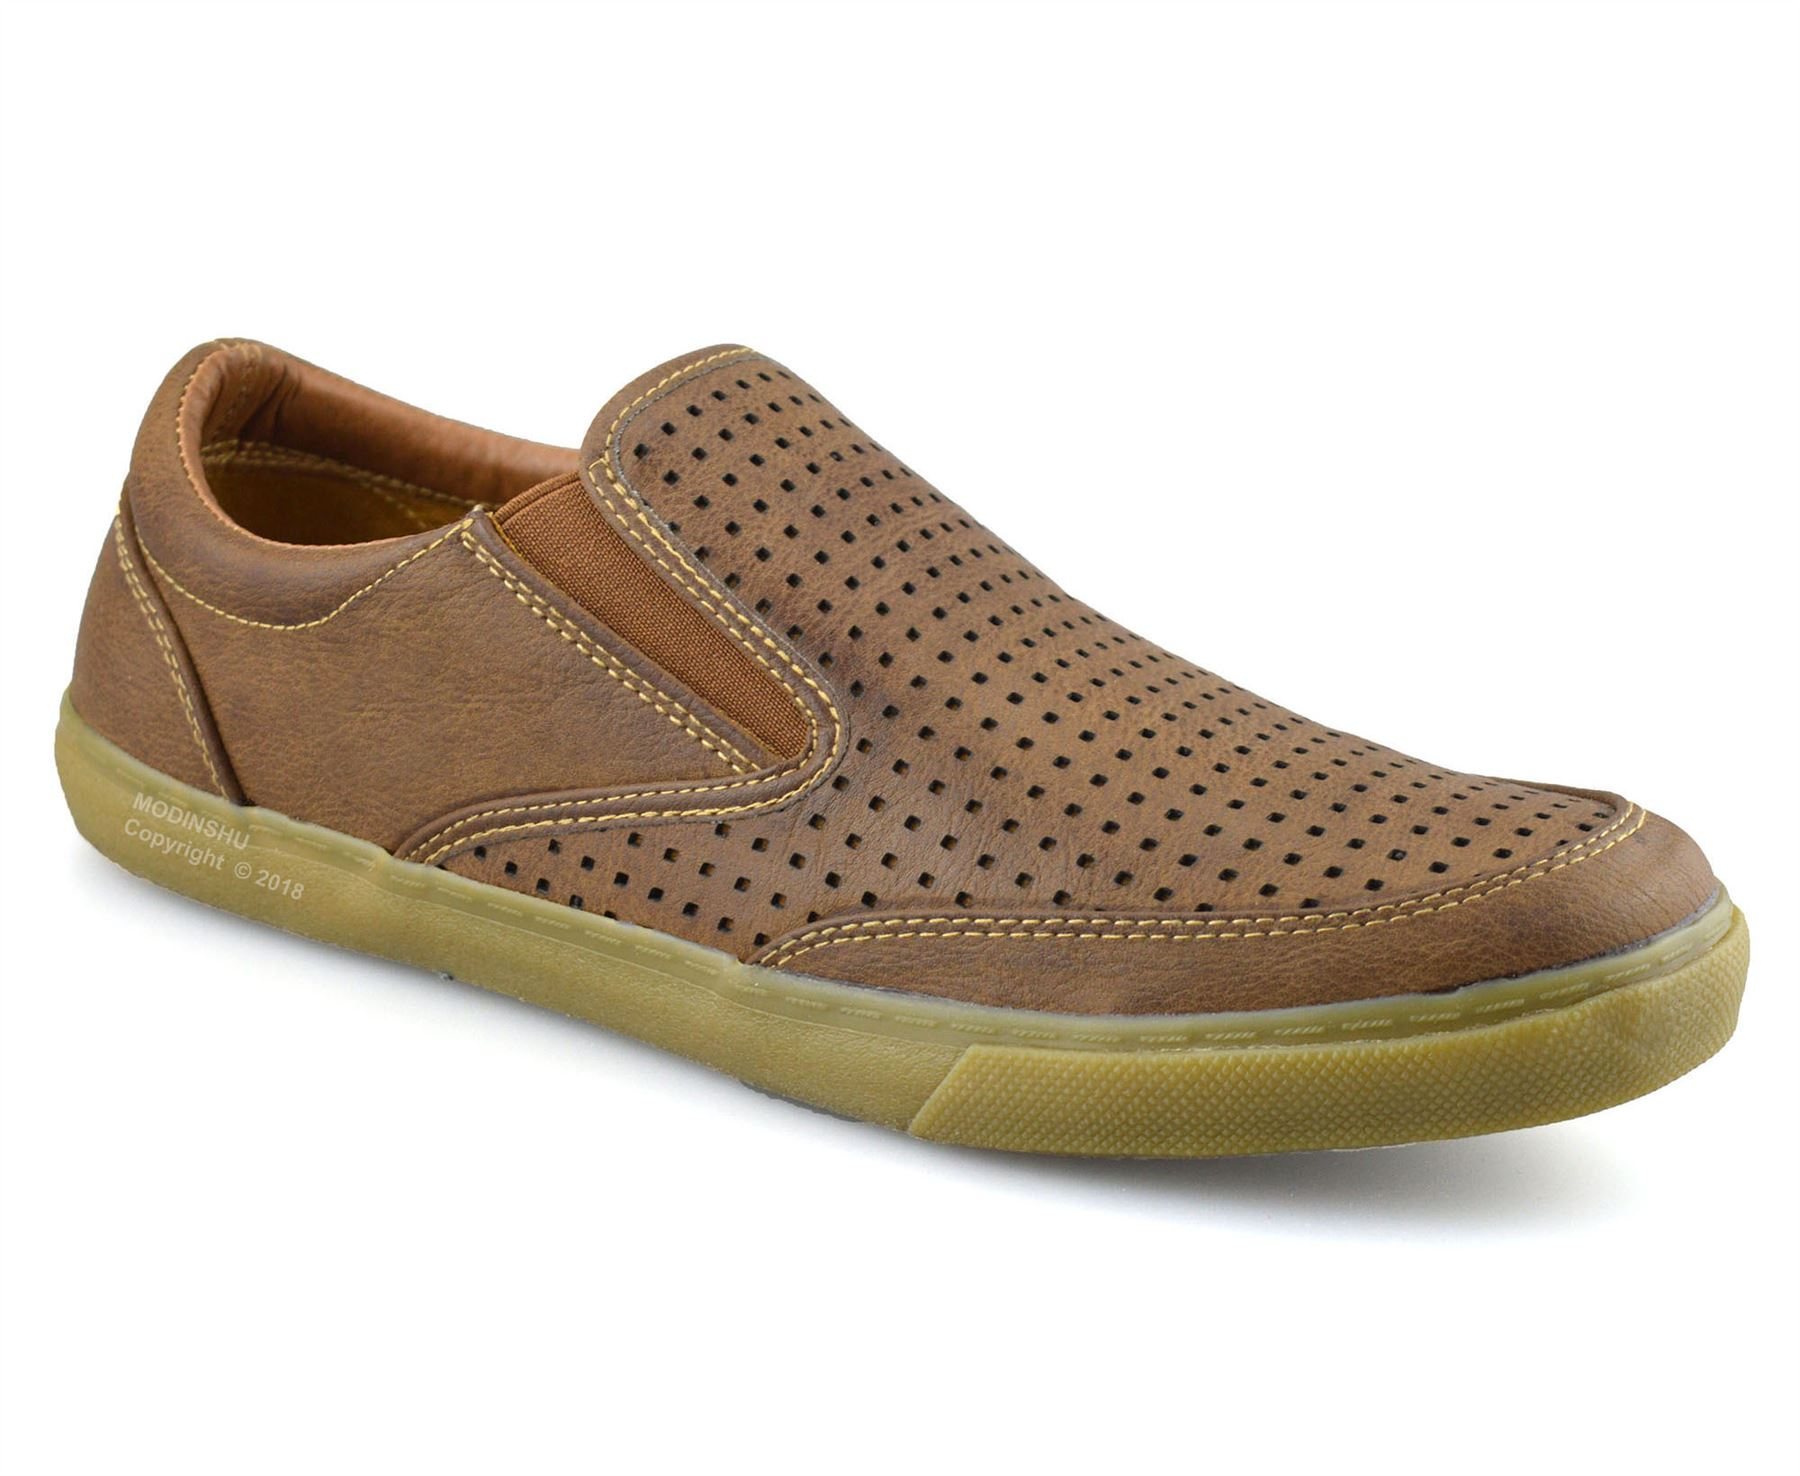 Mens-Casual-Smart-Slip-On-Walking-Moccasin-Loafers-Driving-Deck-Boat-Shoes-Size thumbnail 9